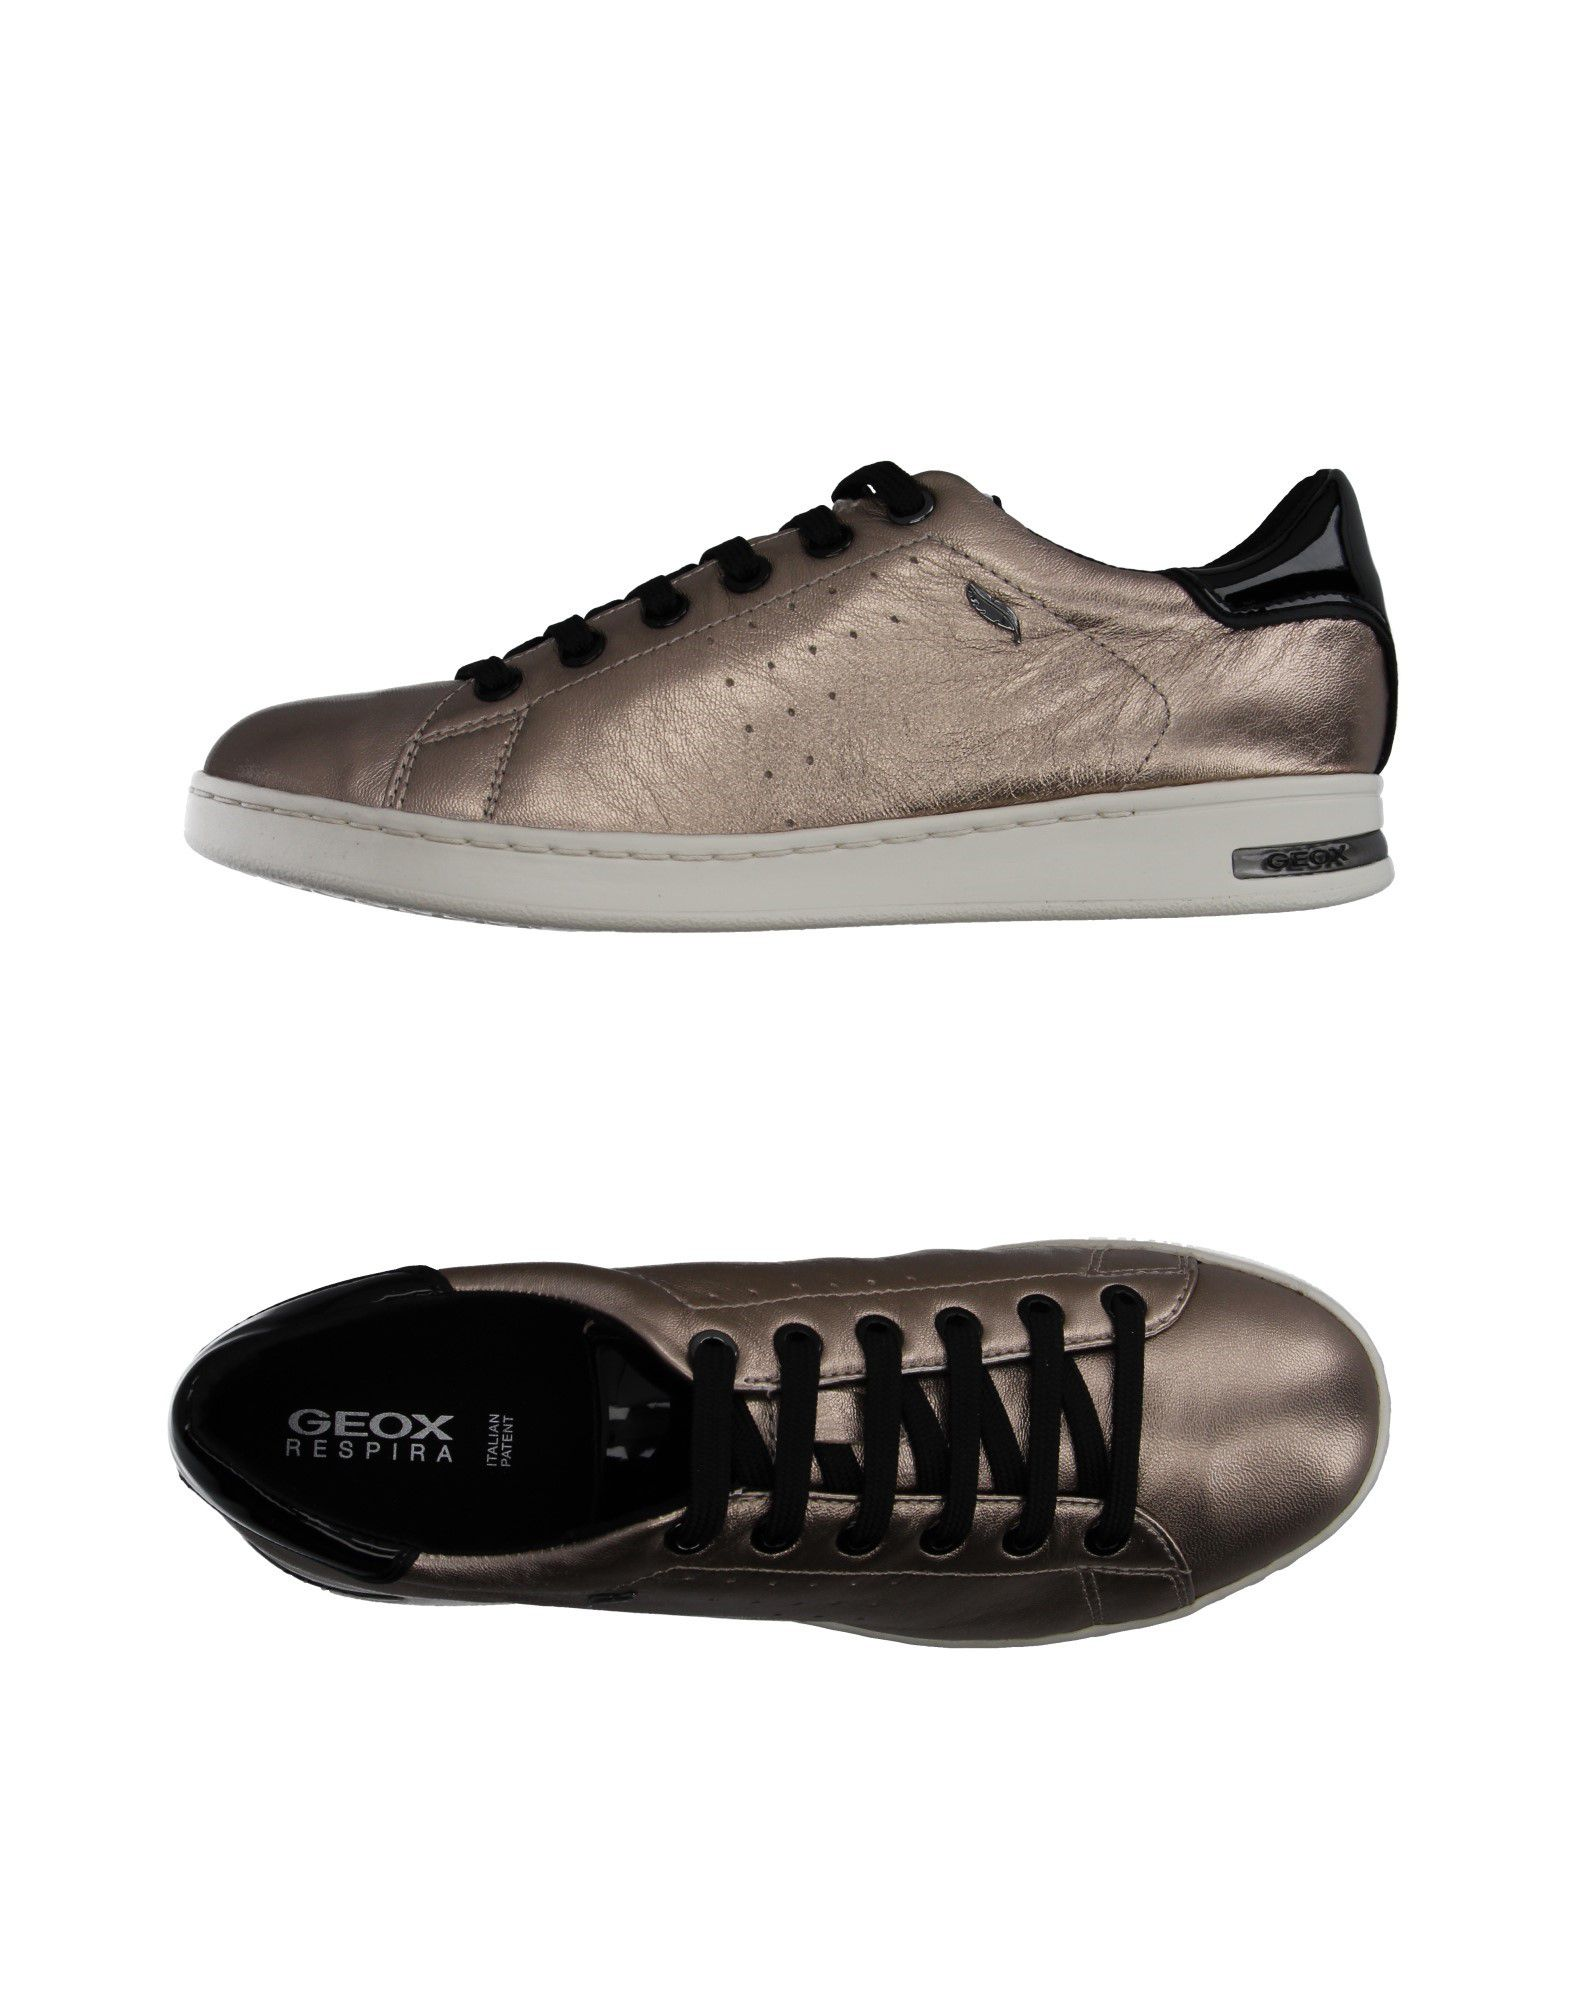 Moda Sneakers Geox Donna - 11111324DT